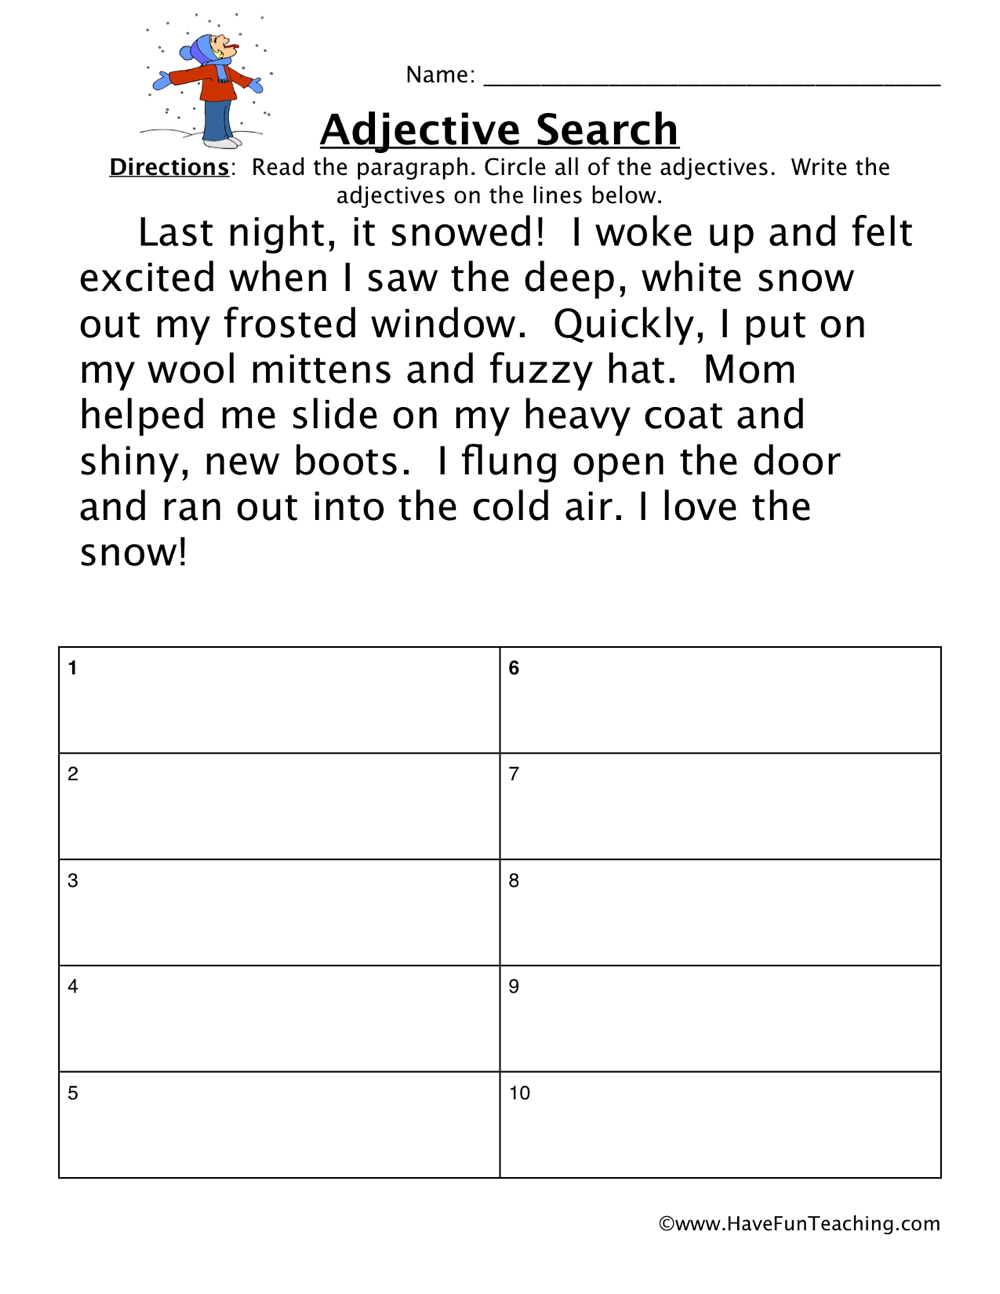 English Worksheets | Have Fun Teaching